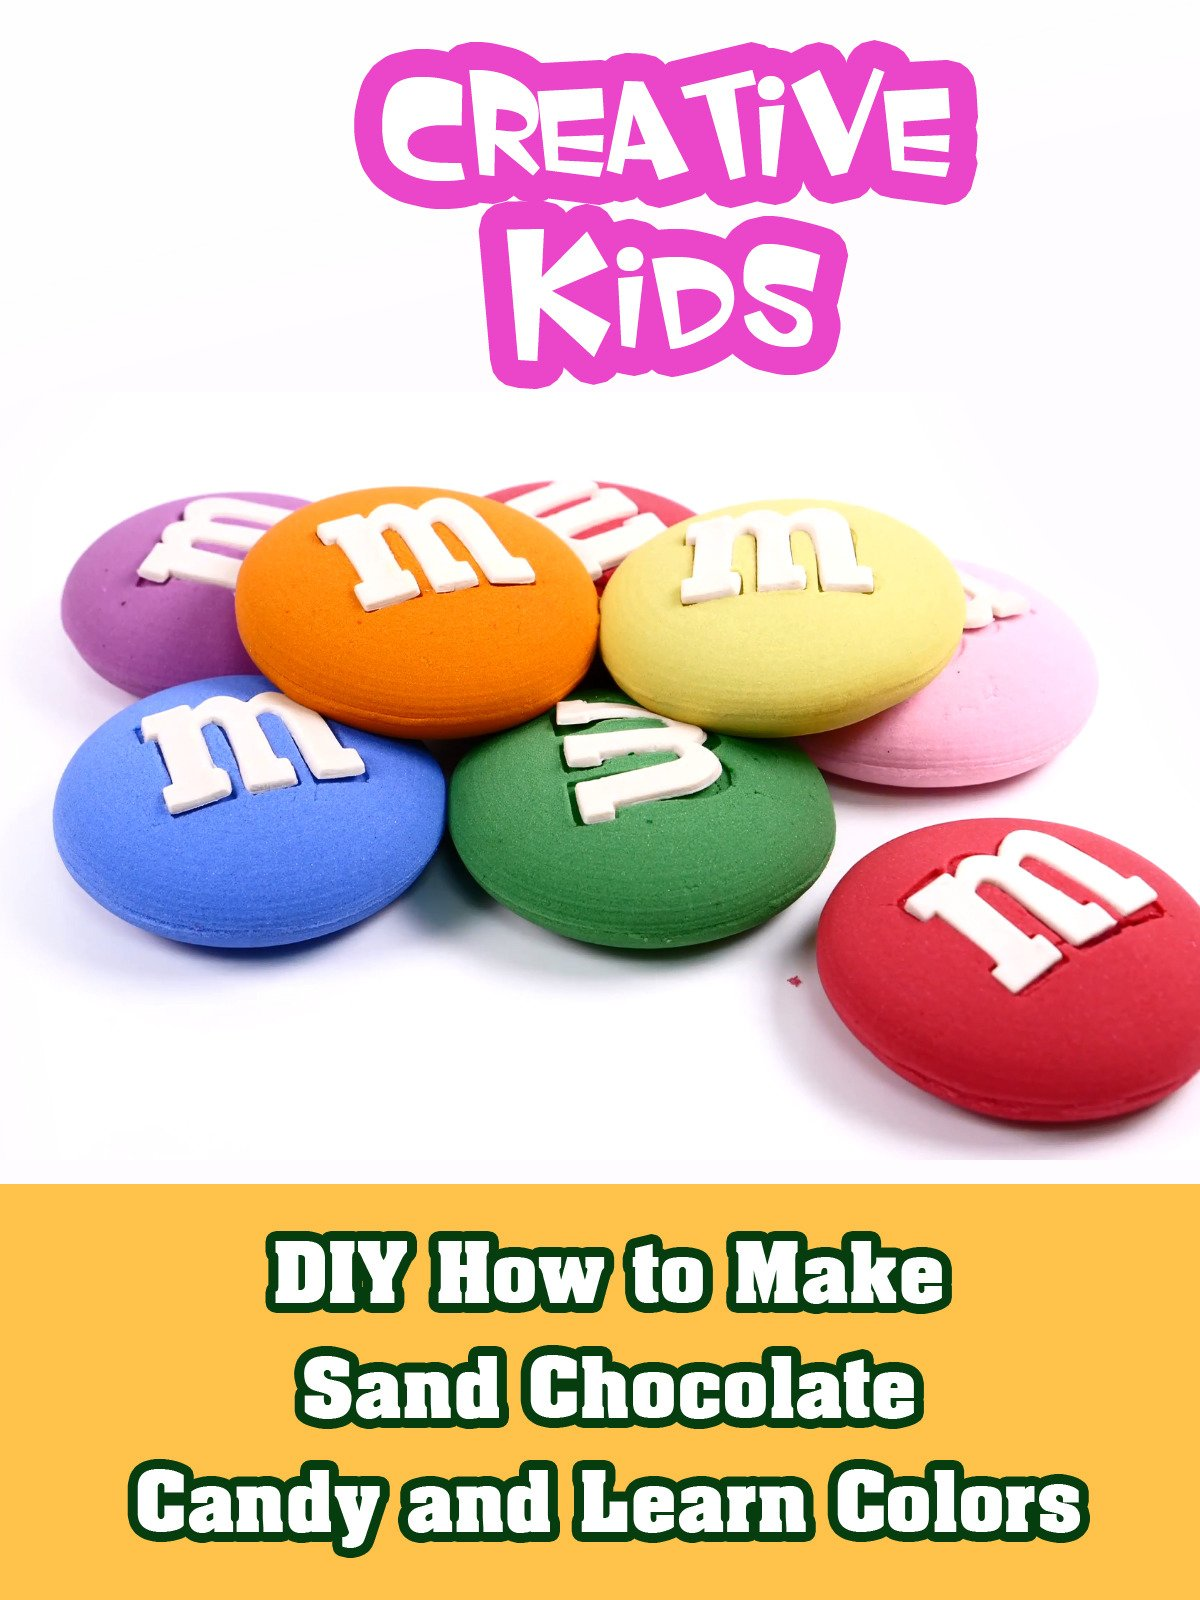 DIY How to Make Sand Chocolate Candy and Learn Colors